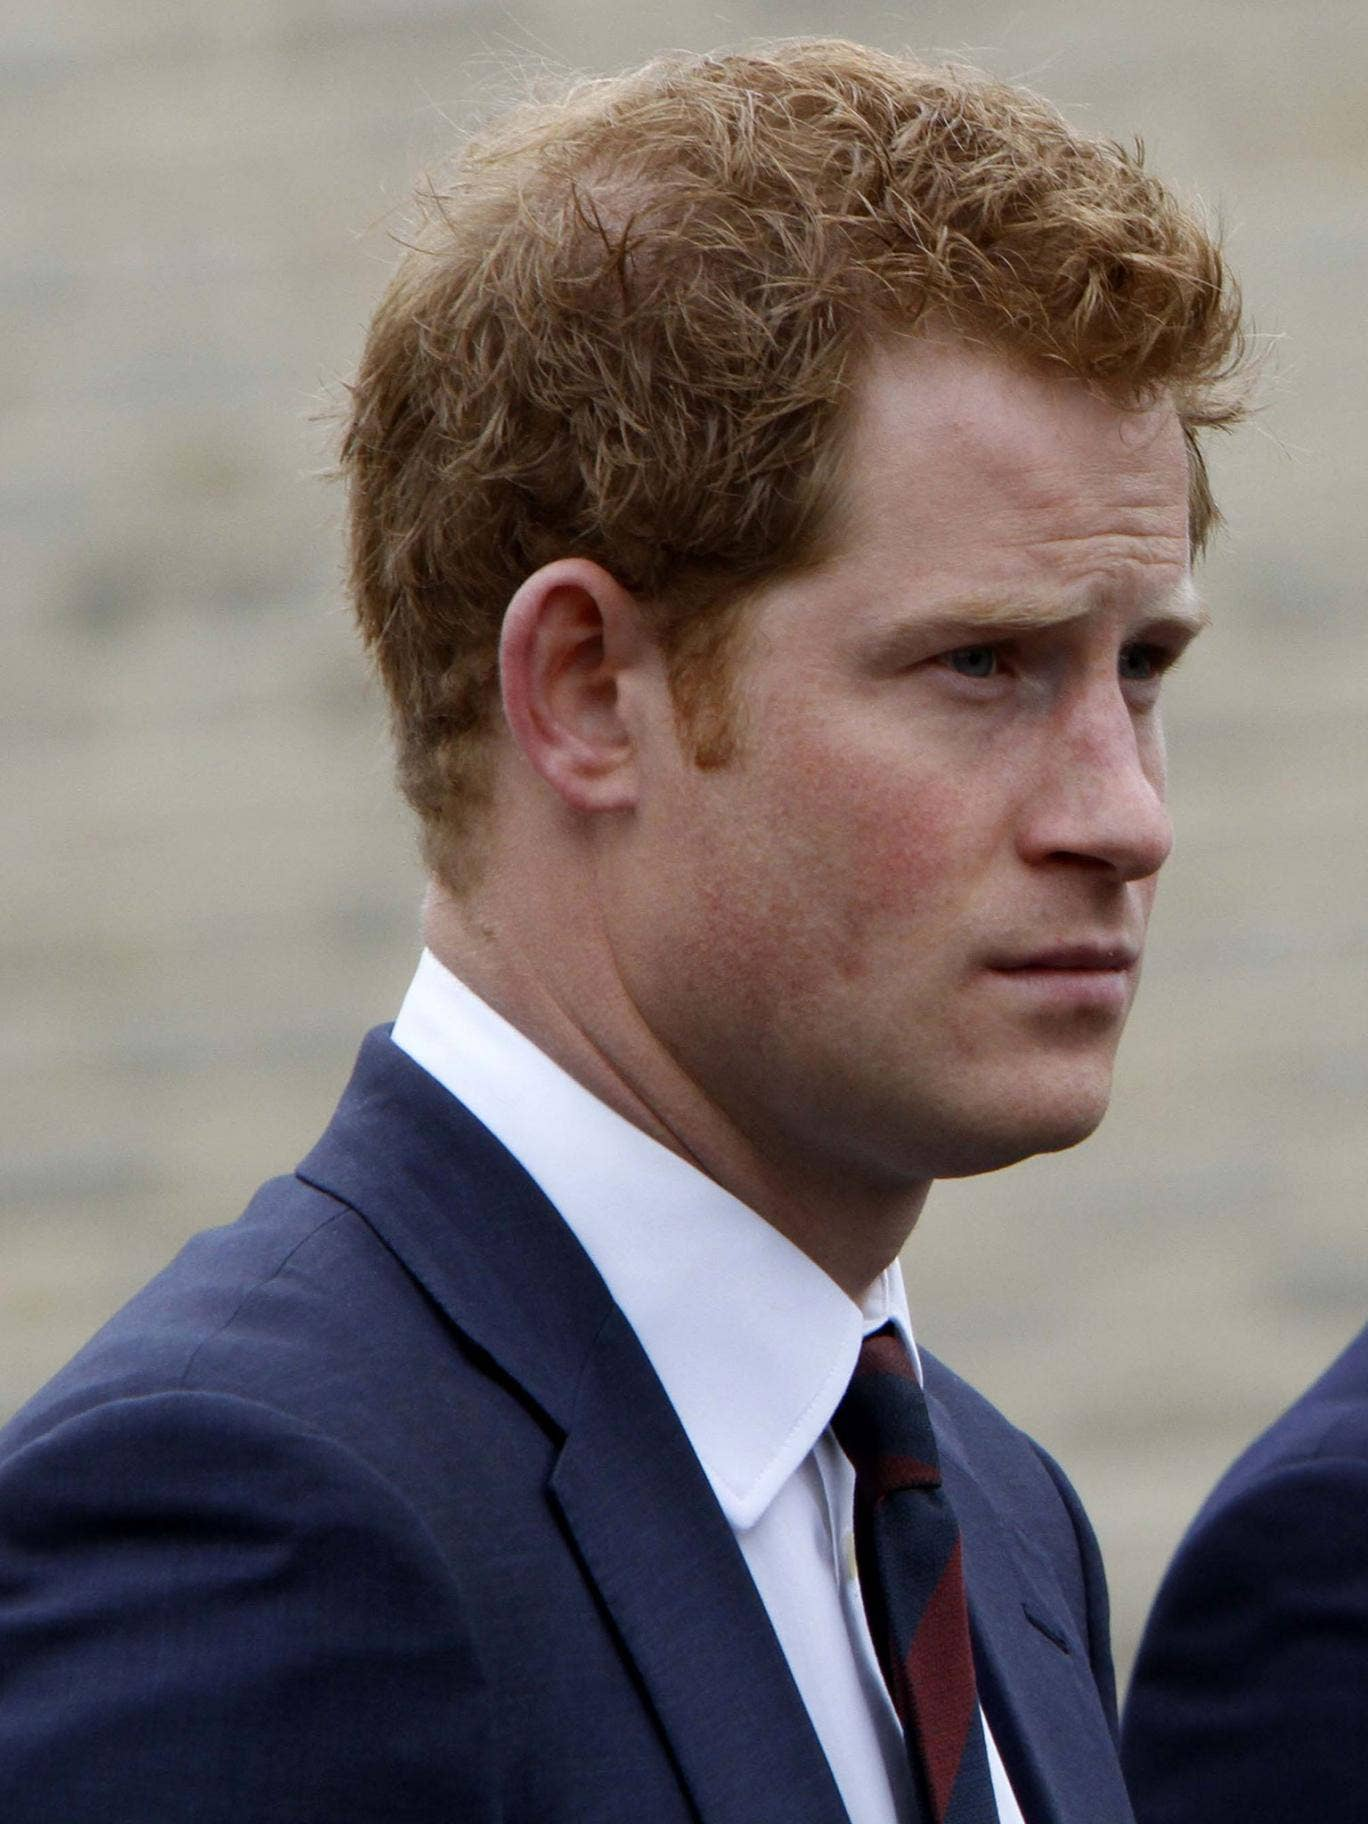 A man has pleaded guilty to threatening to kill Prince Harry, police confirmed